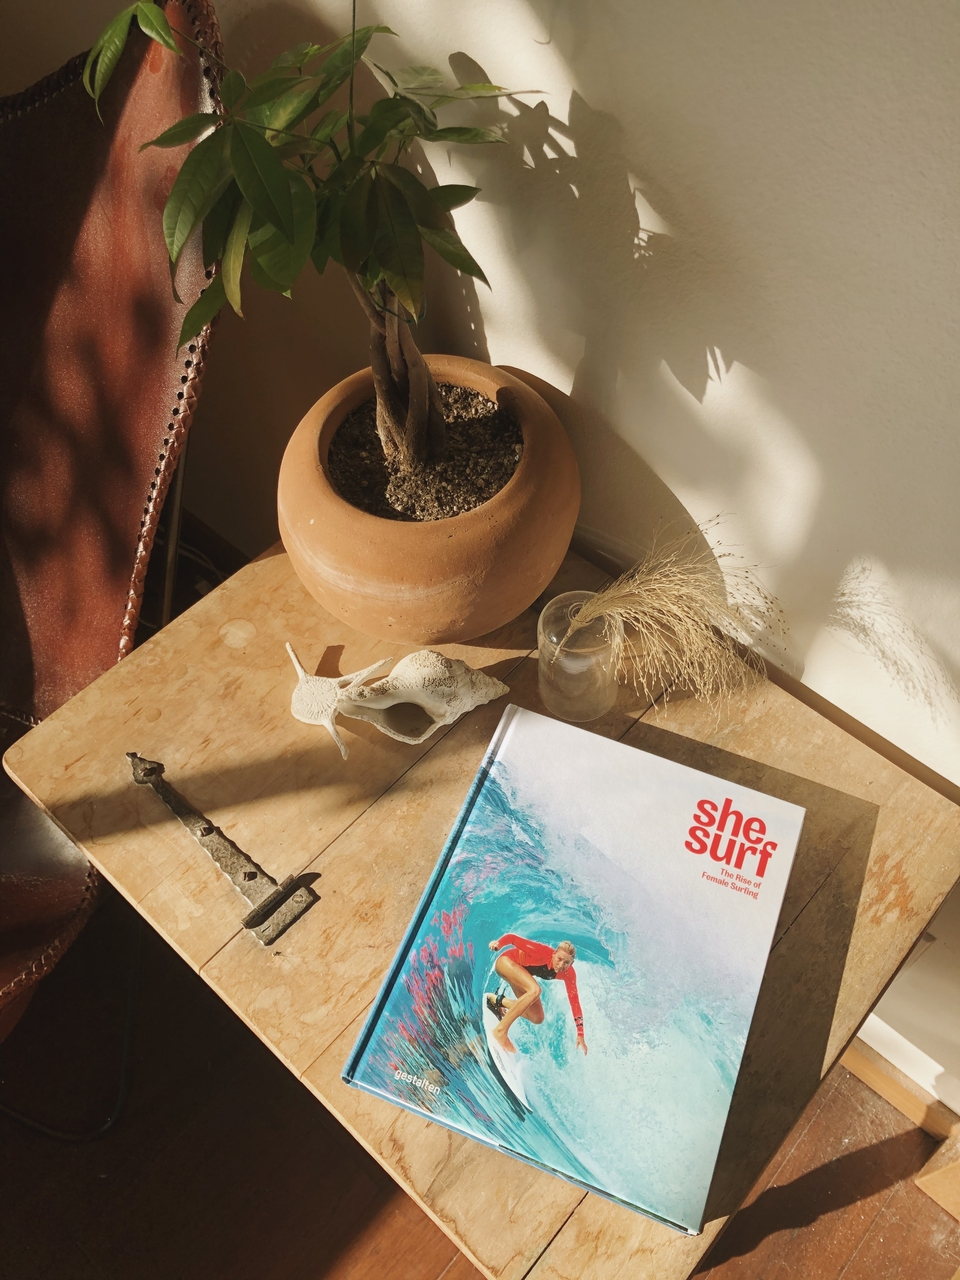 She Surf is the definitive anthology of articles and interviews around female surfing. An informative and brilliant read from cover-to-cover.